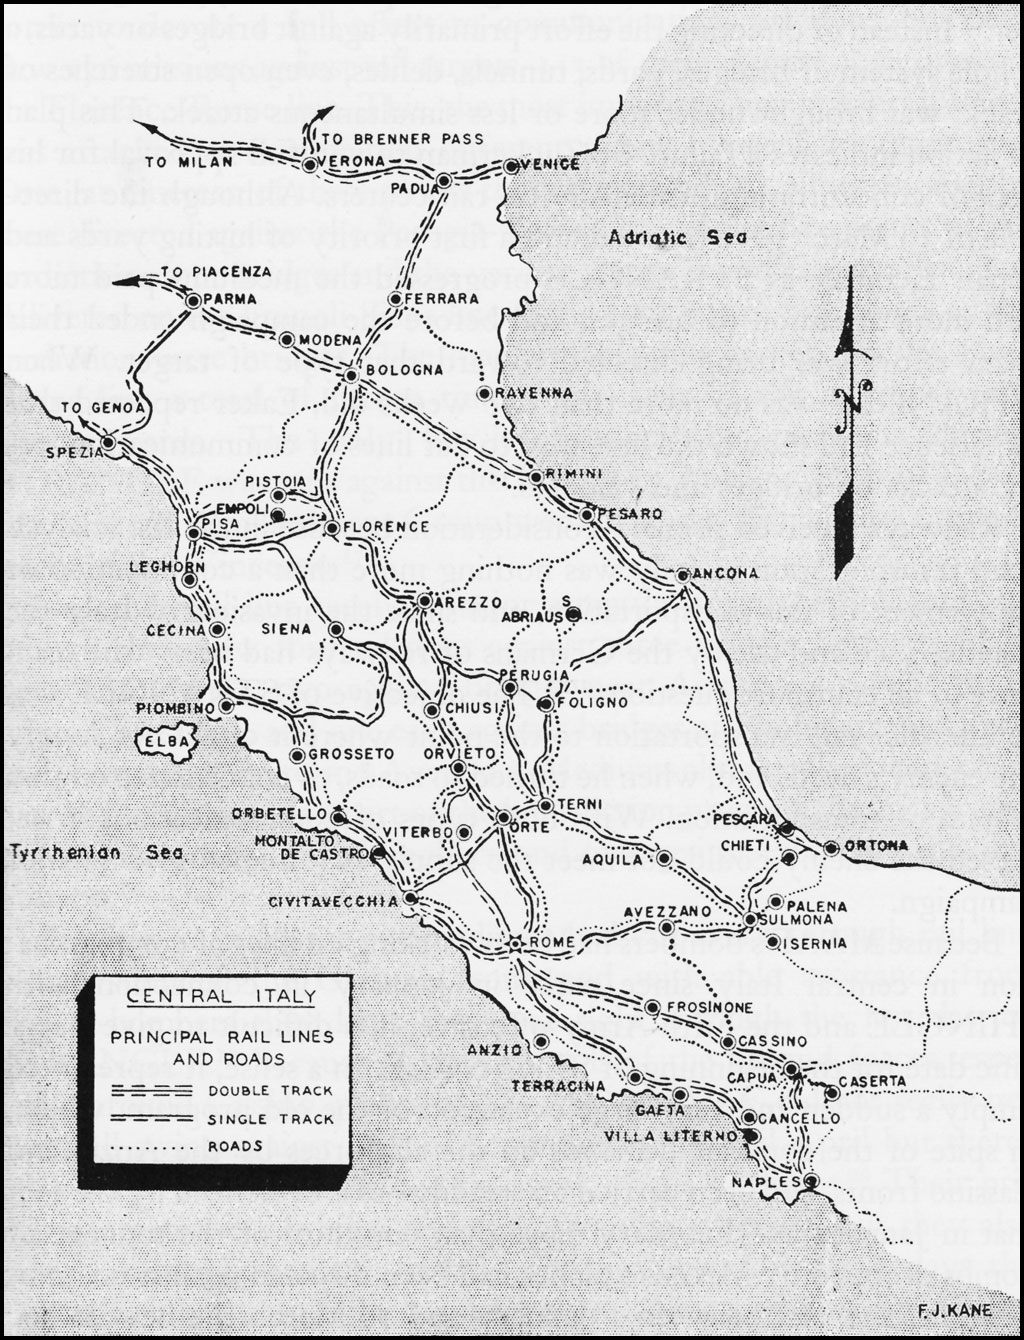 hyperwar army air forces in wwii vol iii German U-boat Map central italy principal rail lines and roads